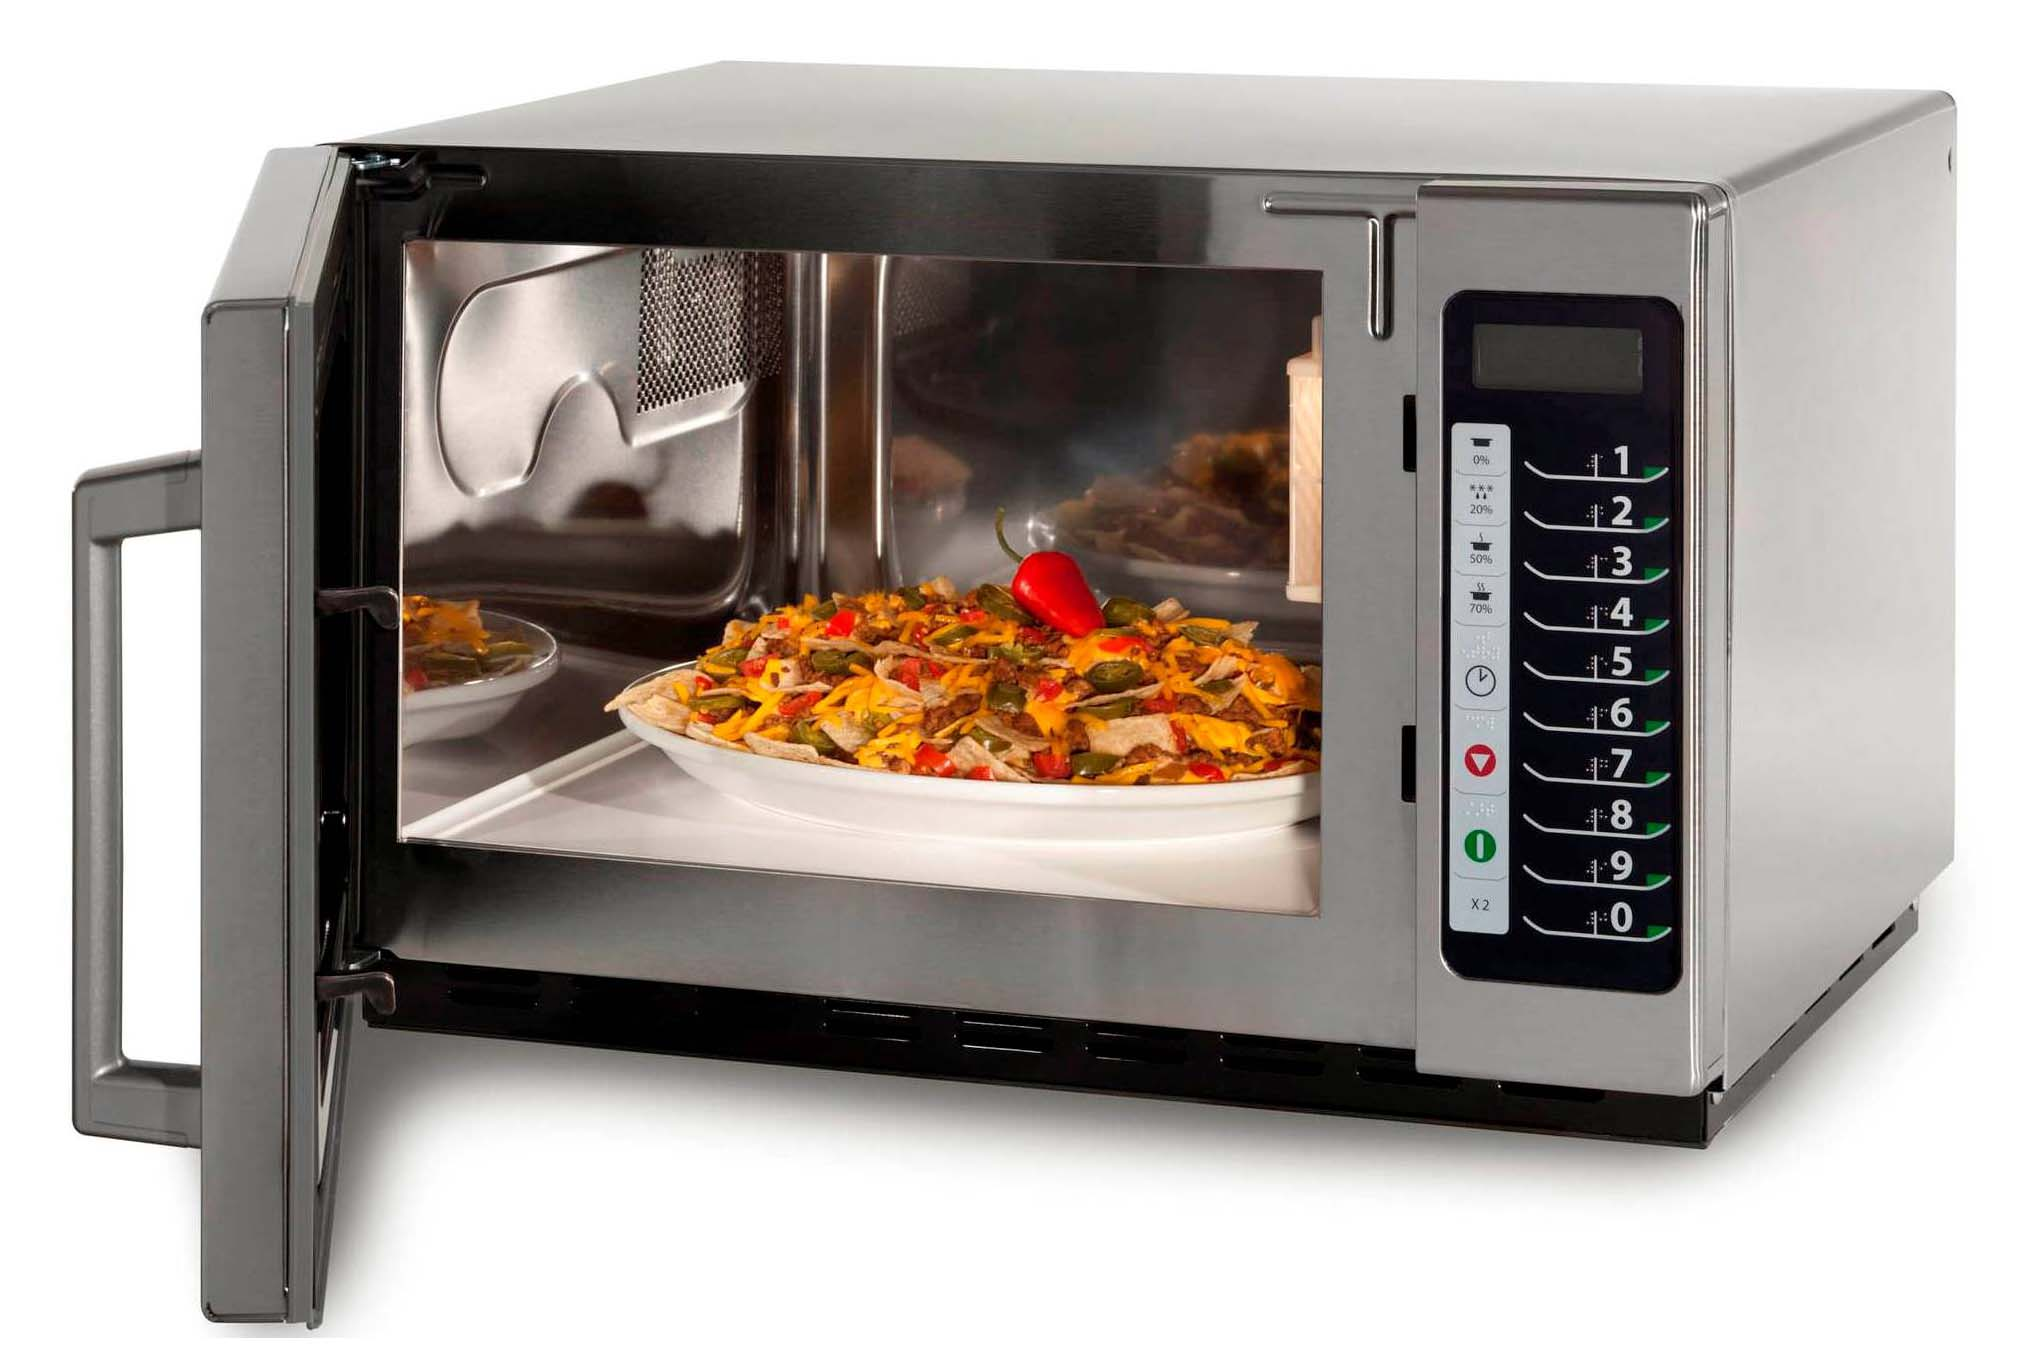 She Argues That The Cooking Abilities Of Microwave Ovens Go Beyond Reheating And Defrosting